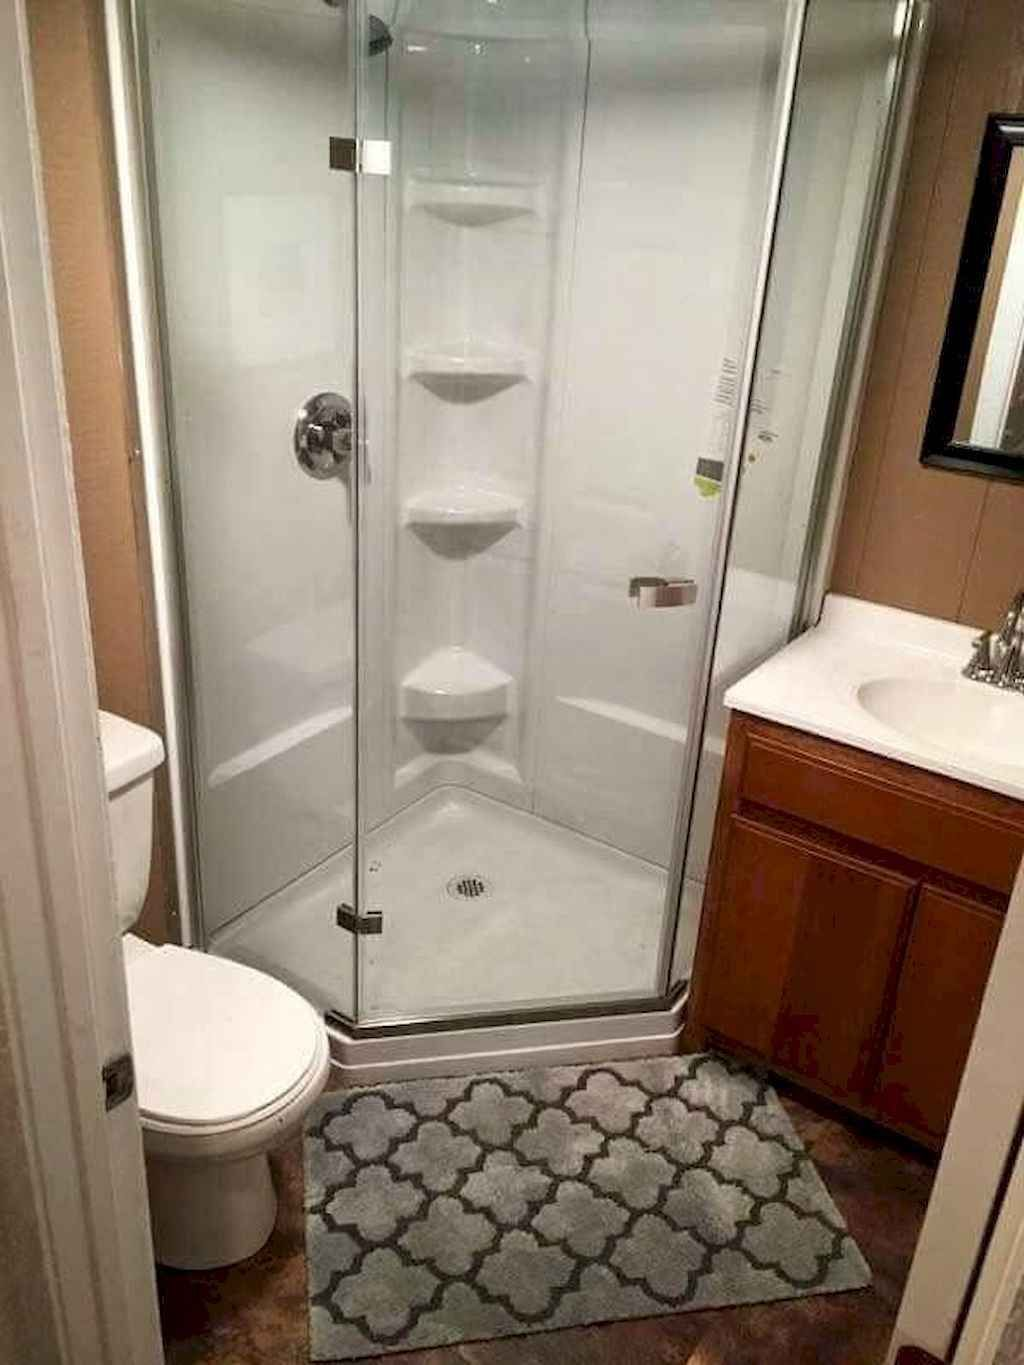 61 tiny house bathroom remodel ideas #tinyhousebathroom